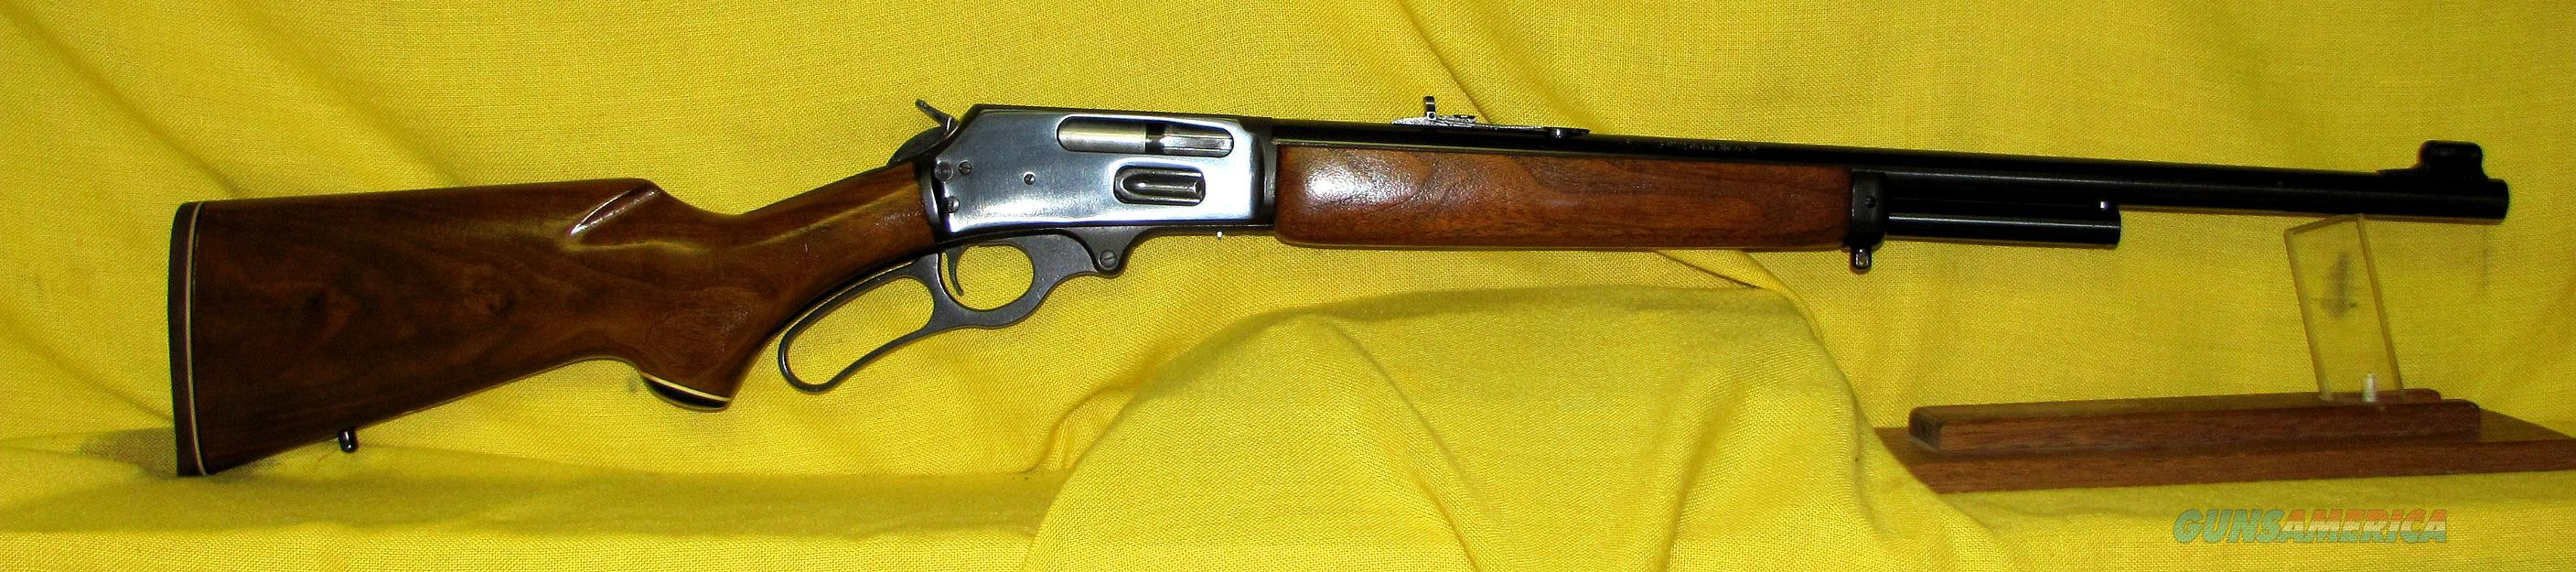 "MARLIN 444SS .444 MARLIN 22"" BARREL  Guns > Rifles > Marlin Rifles > Modern > Lever Action"